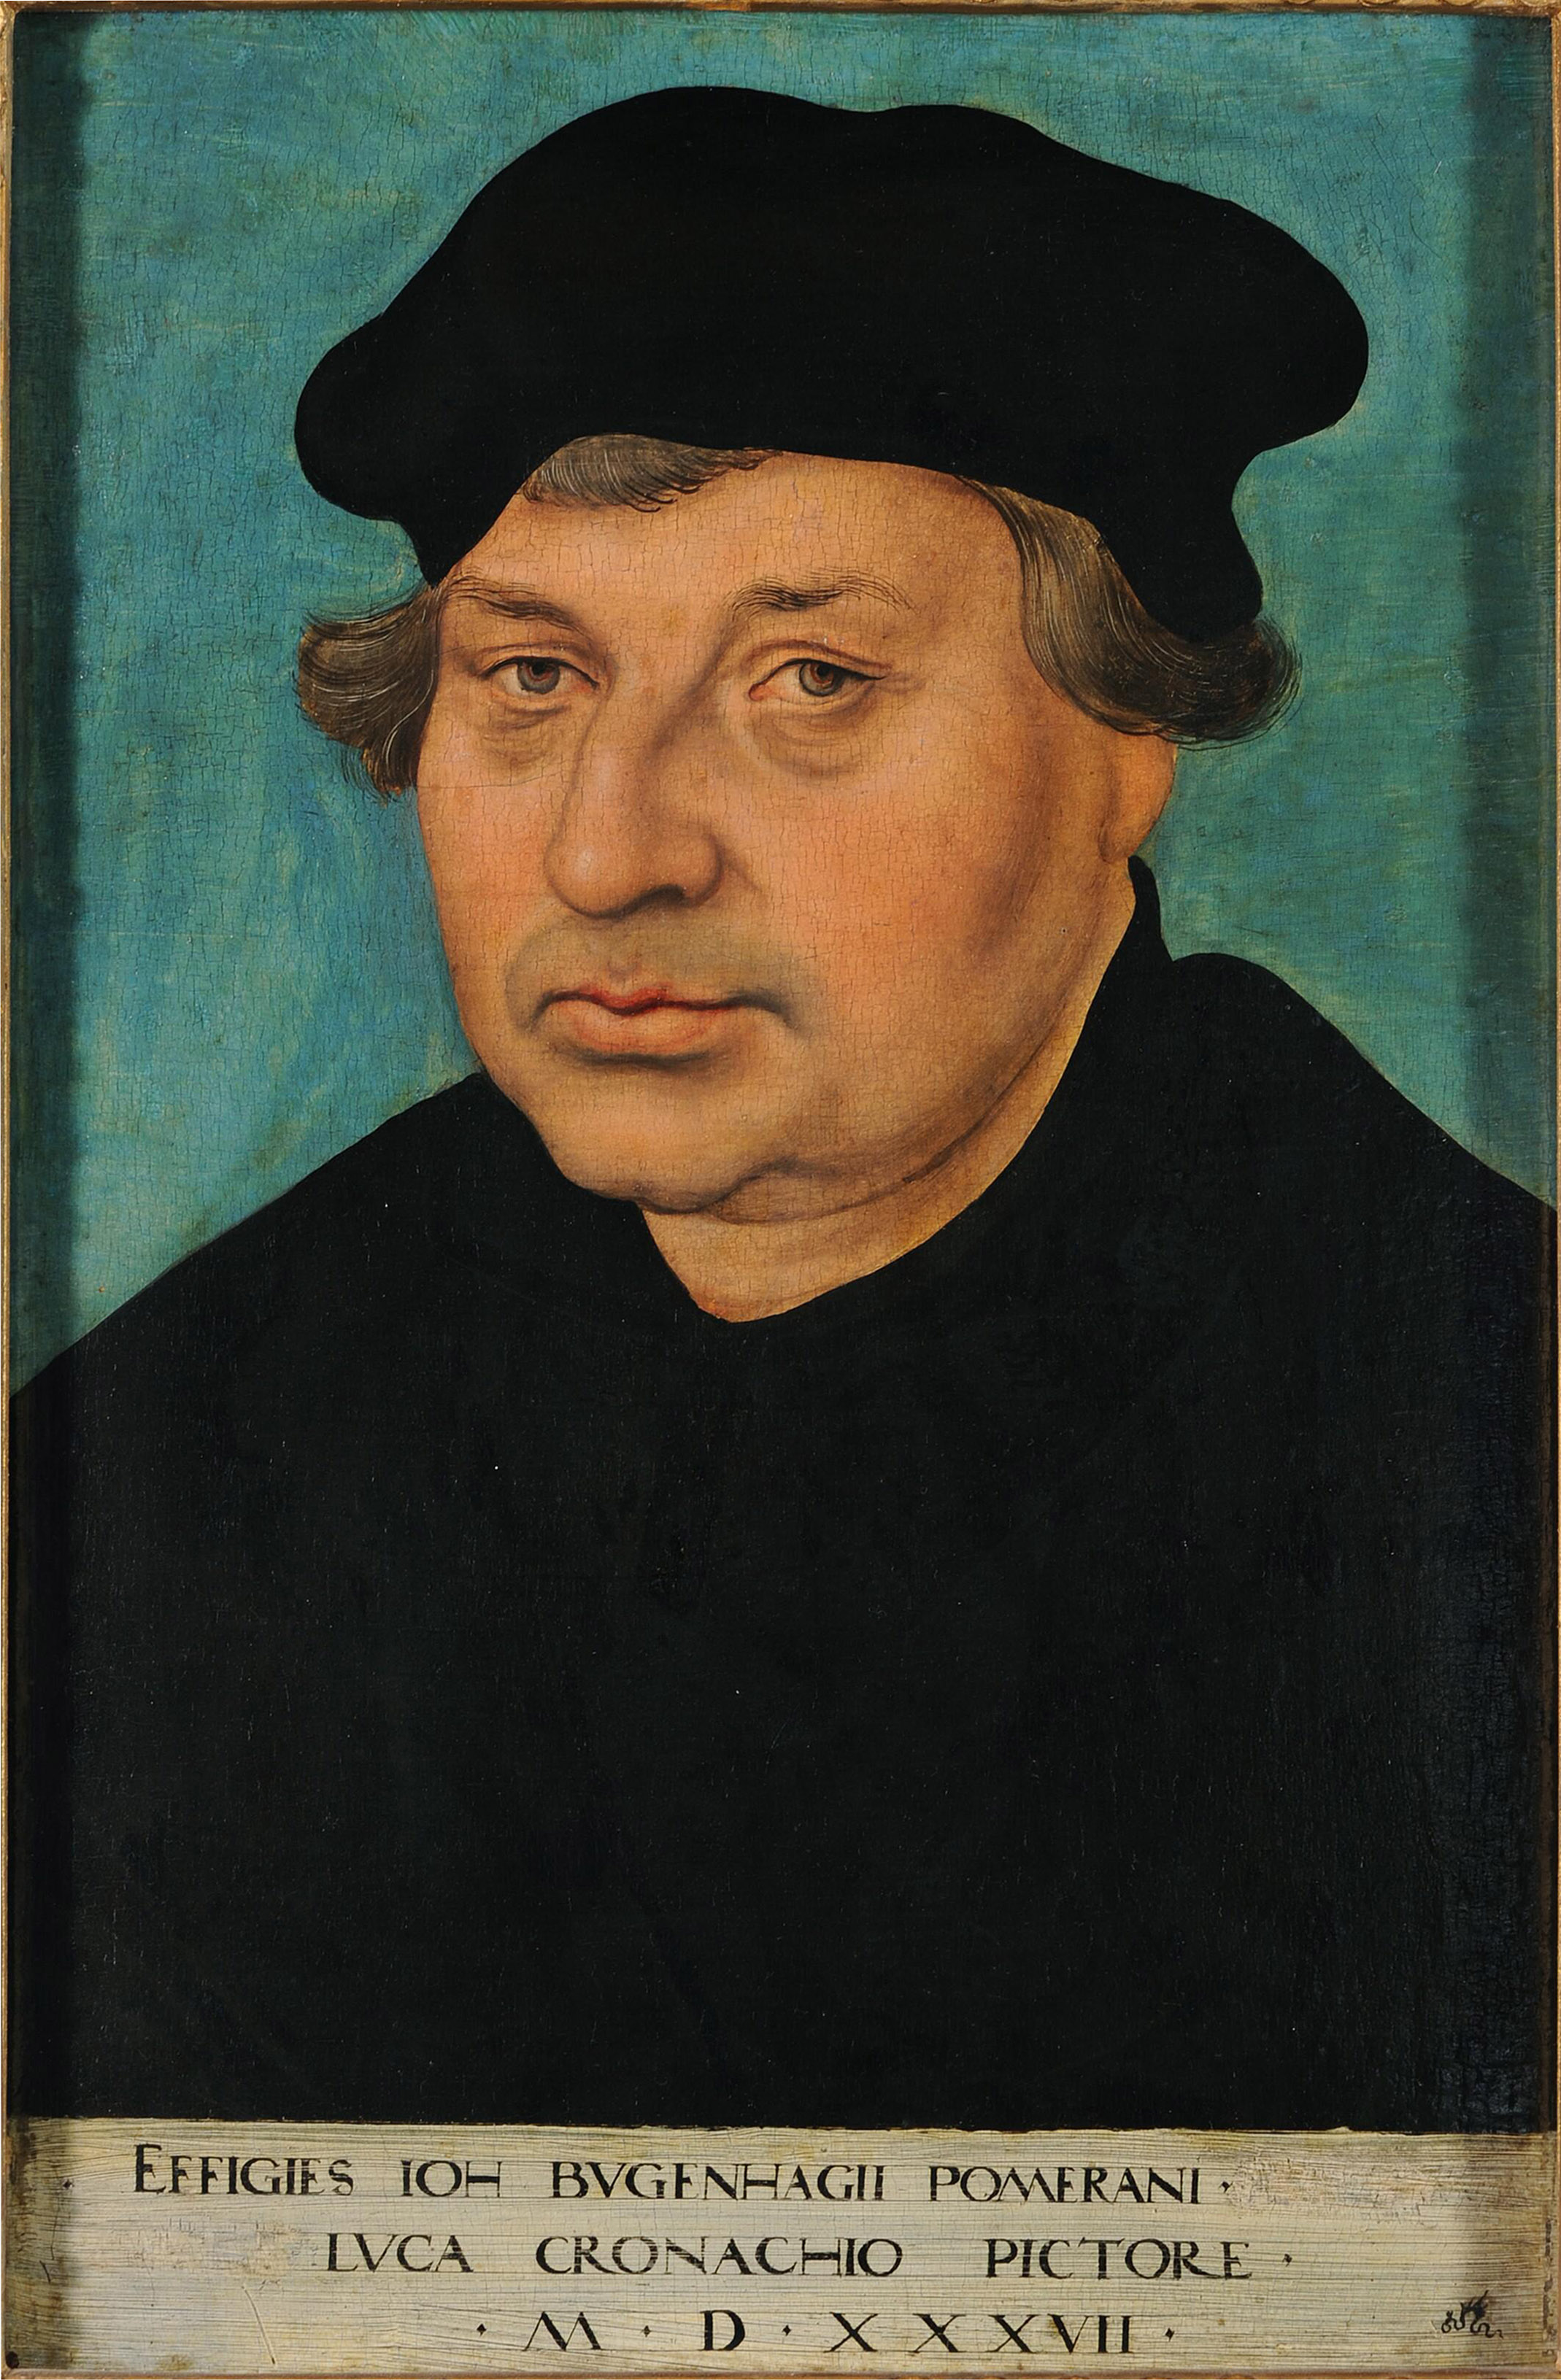 Bugenhagen in 1537 by [[Lucas Cranach the Elder|Lucas Cranach]]